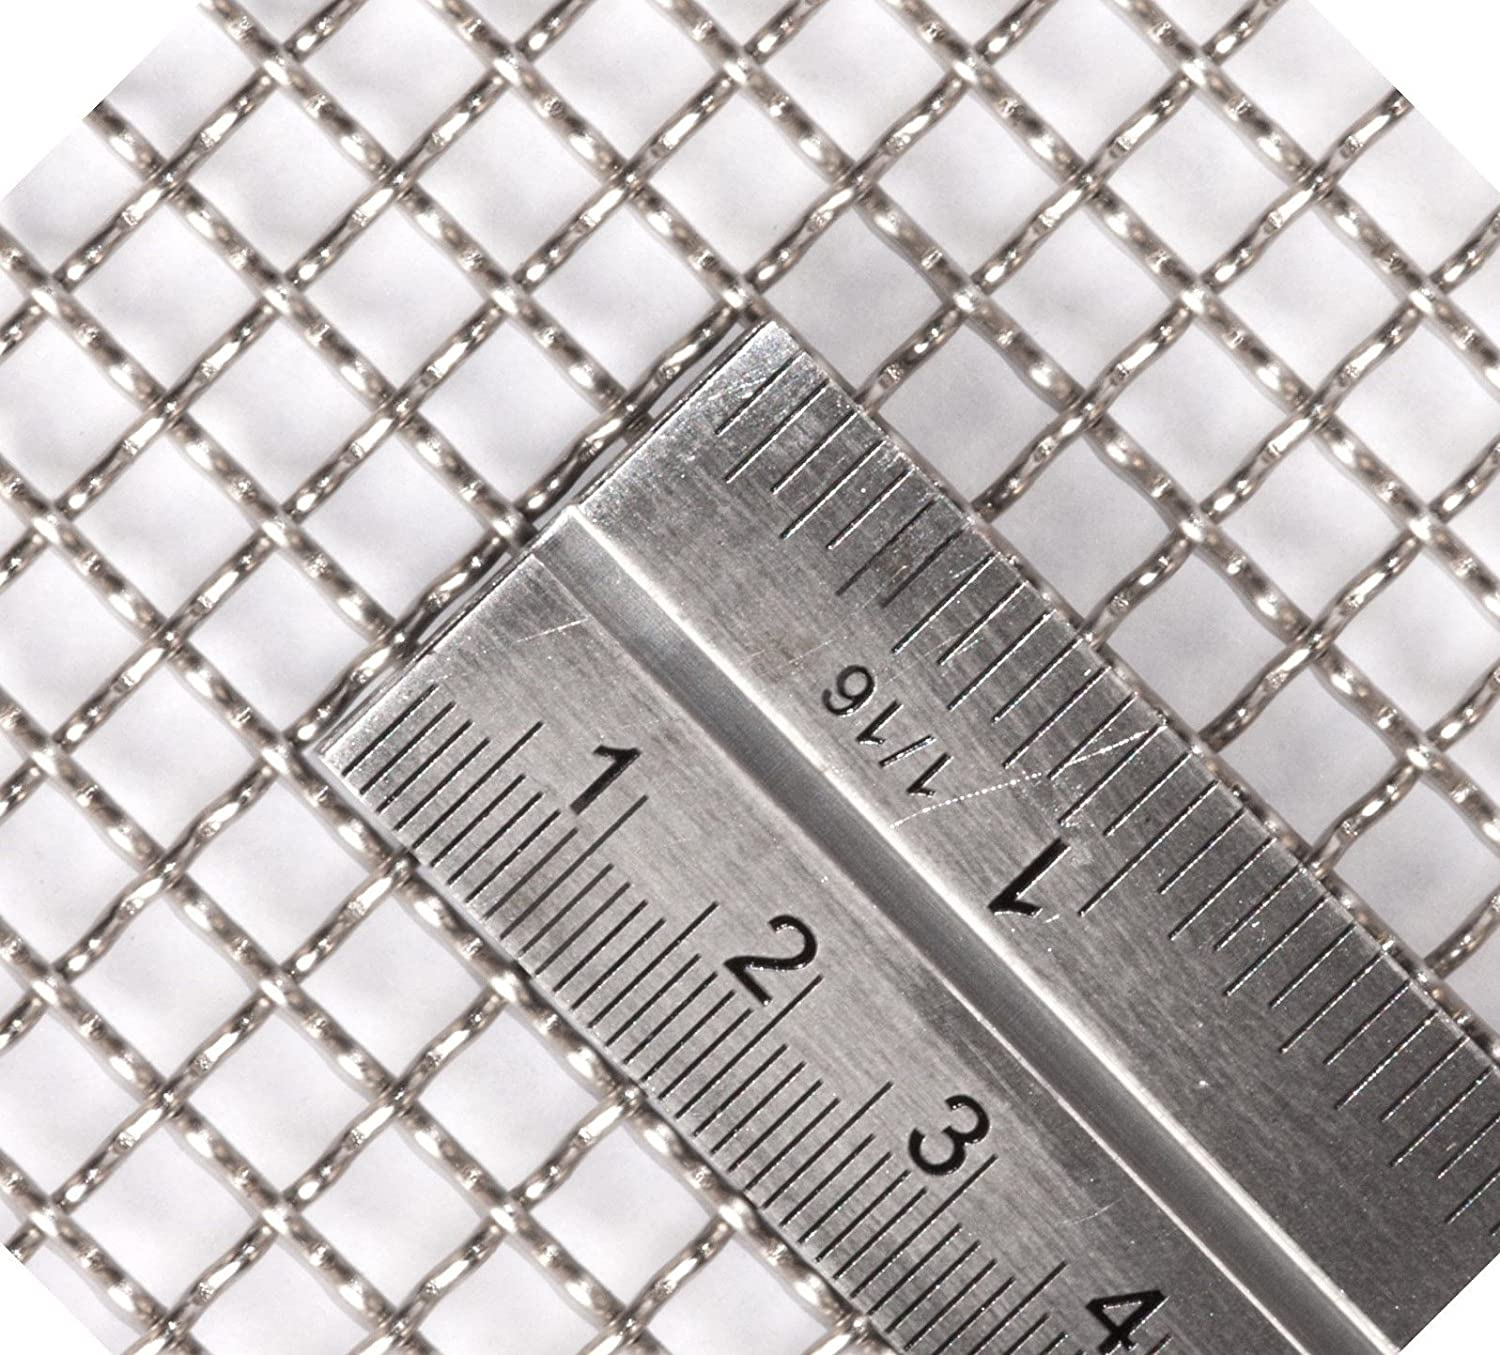 15cmx15cm By Inoxia Vent Screen; Size 40 Mesh Stainless Steel For Vivarium